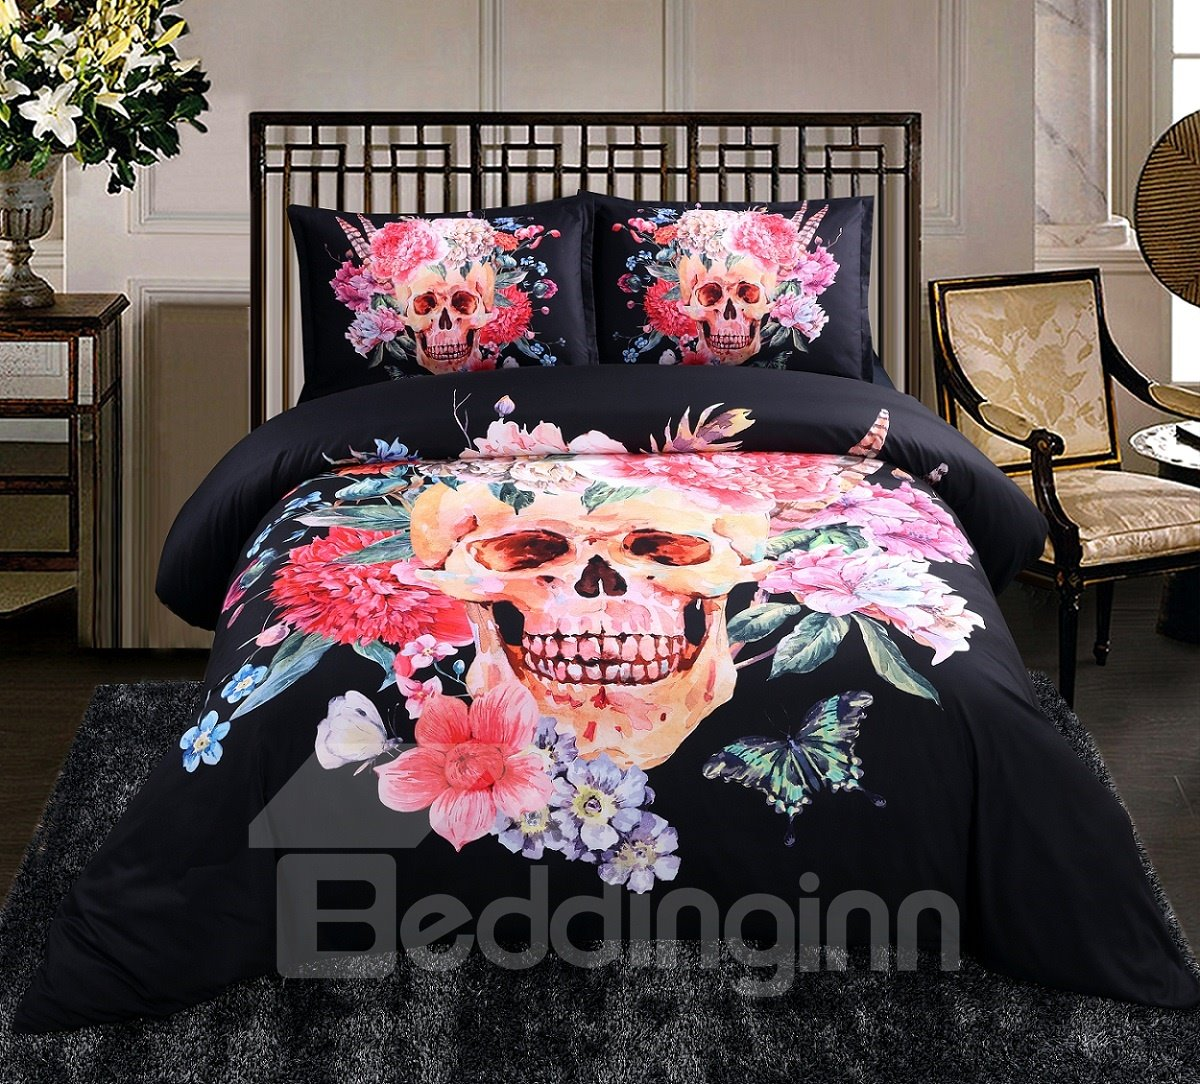 Blooming Flower and Skull Print 4-Piece Duvet Cover Sets